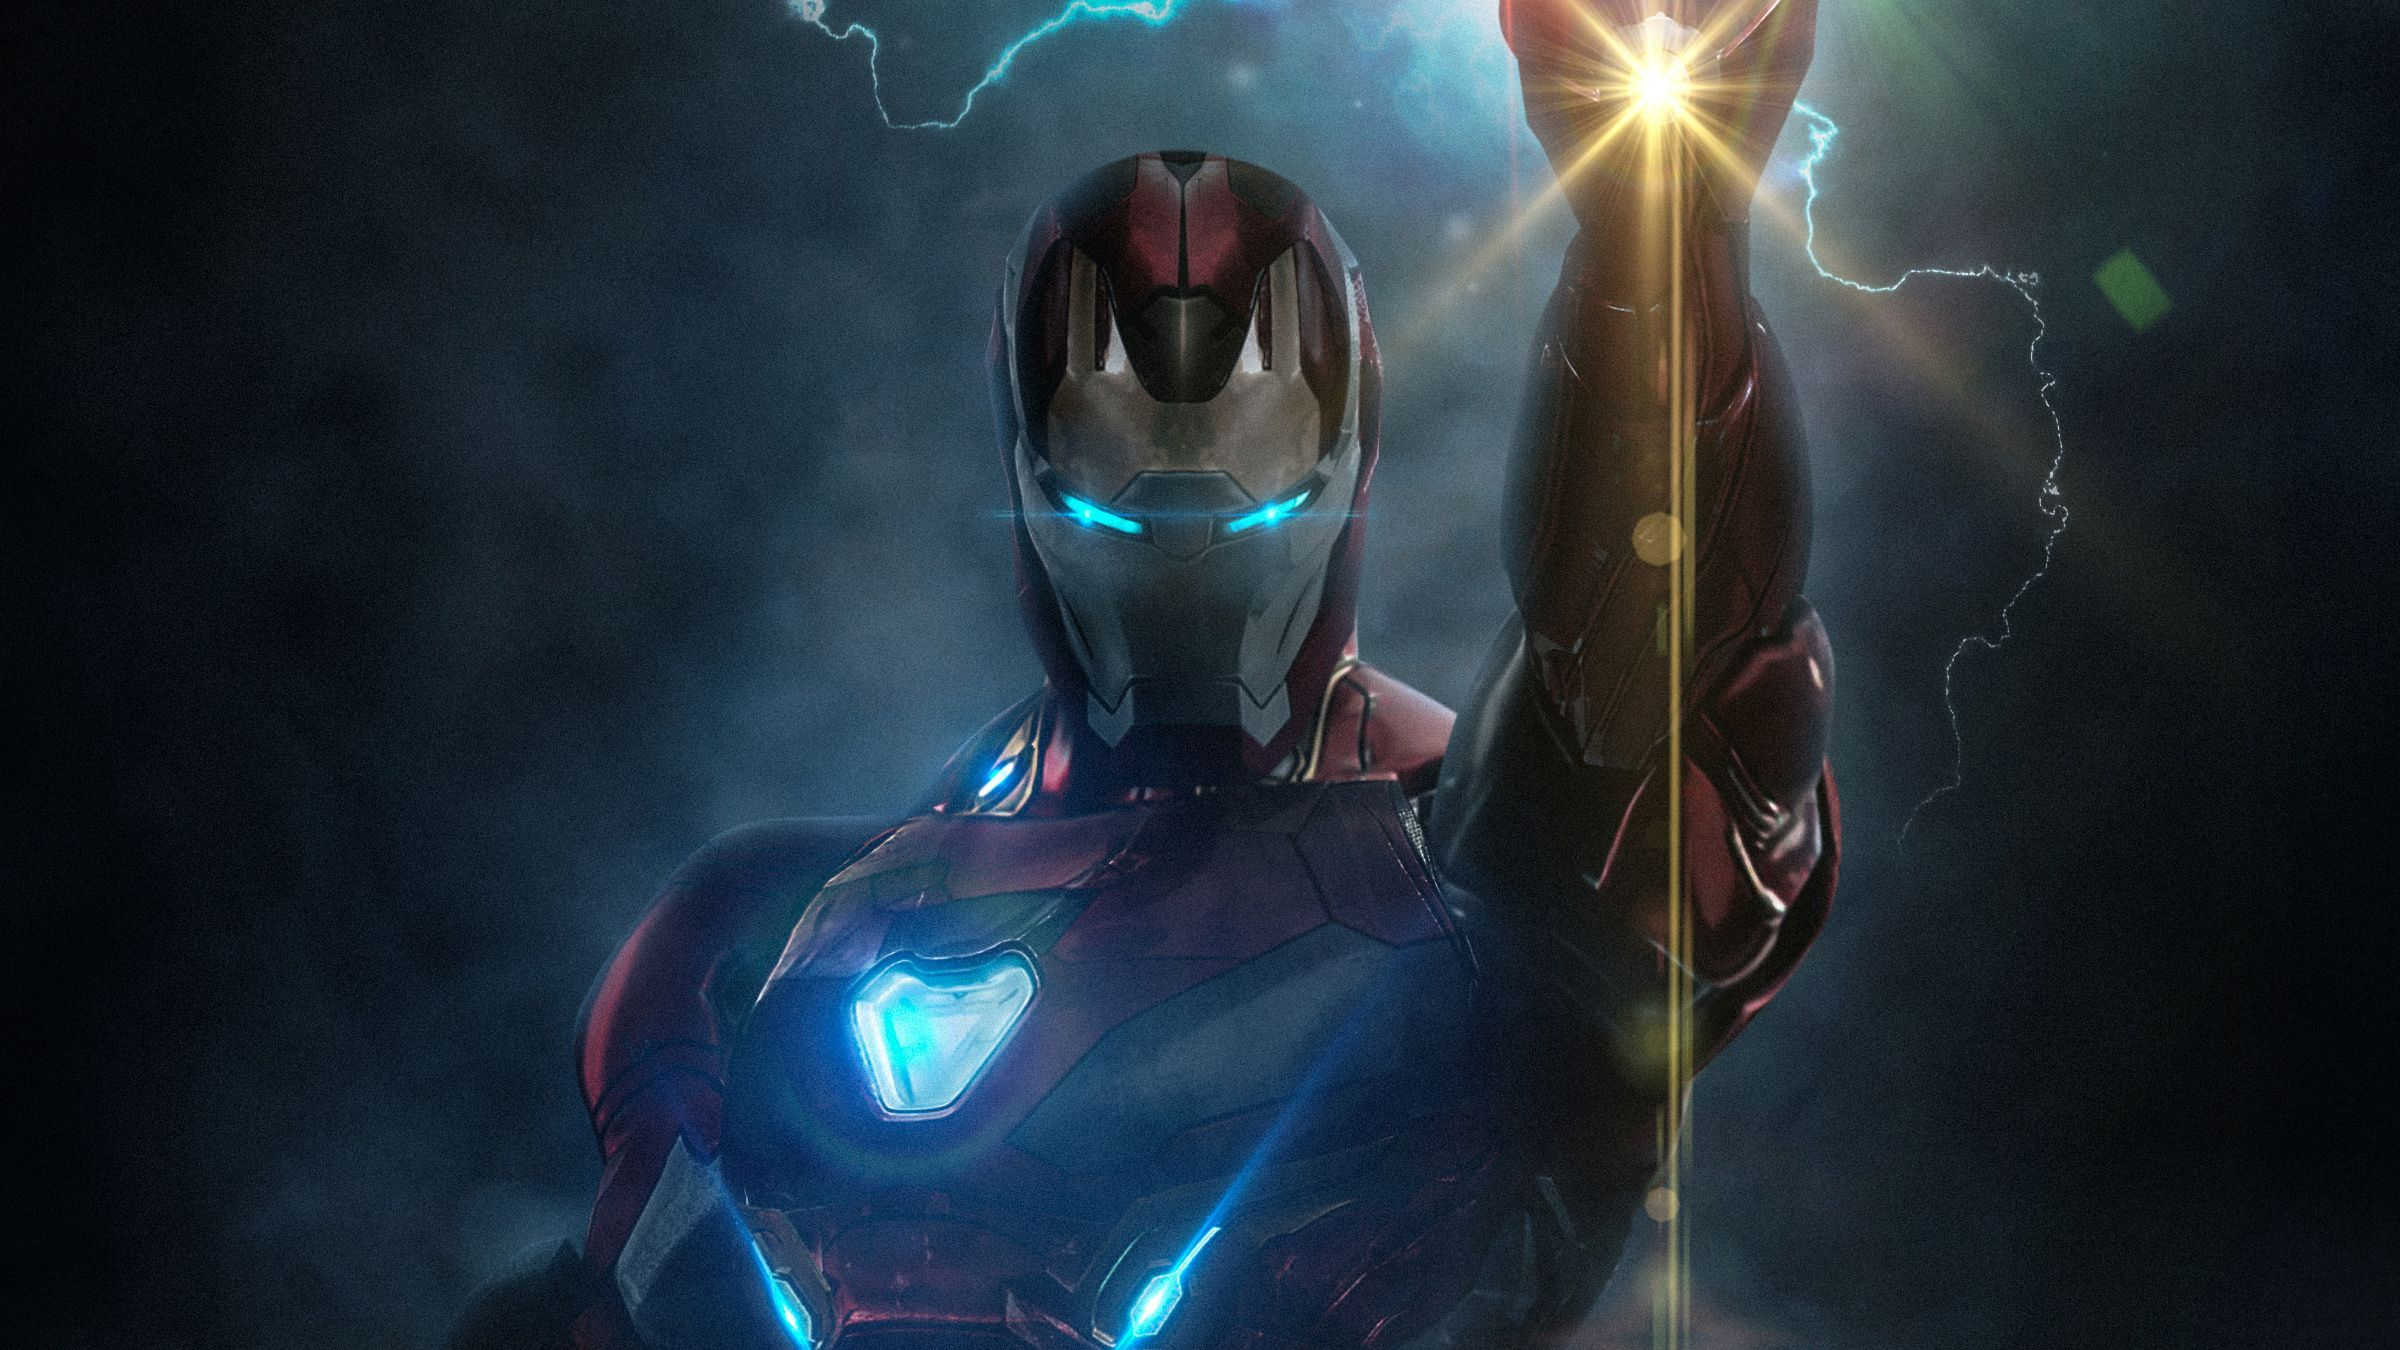 Pin By Mobina On Wallpapers Iron Man Wallpaper Wallpapers Marvel Iron Man Hd Wallpaper